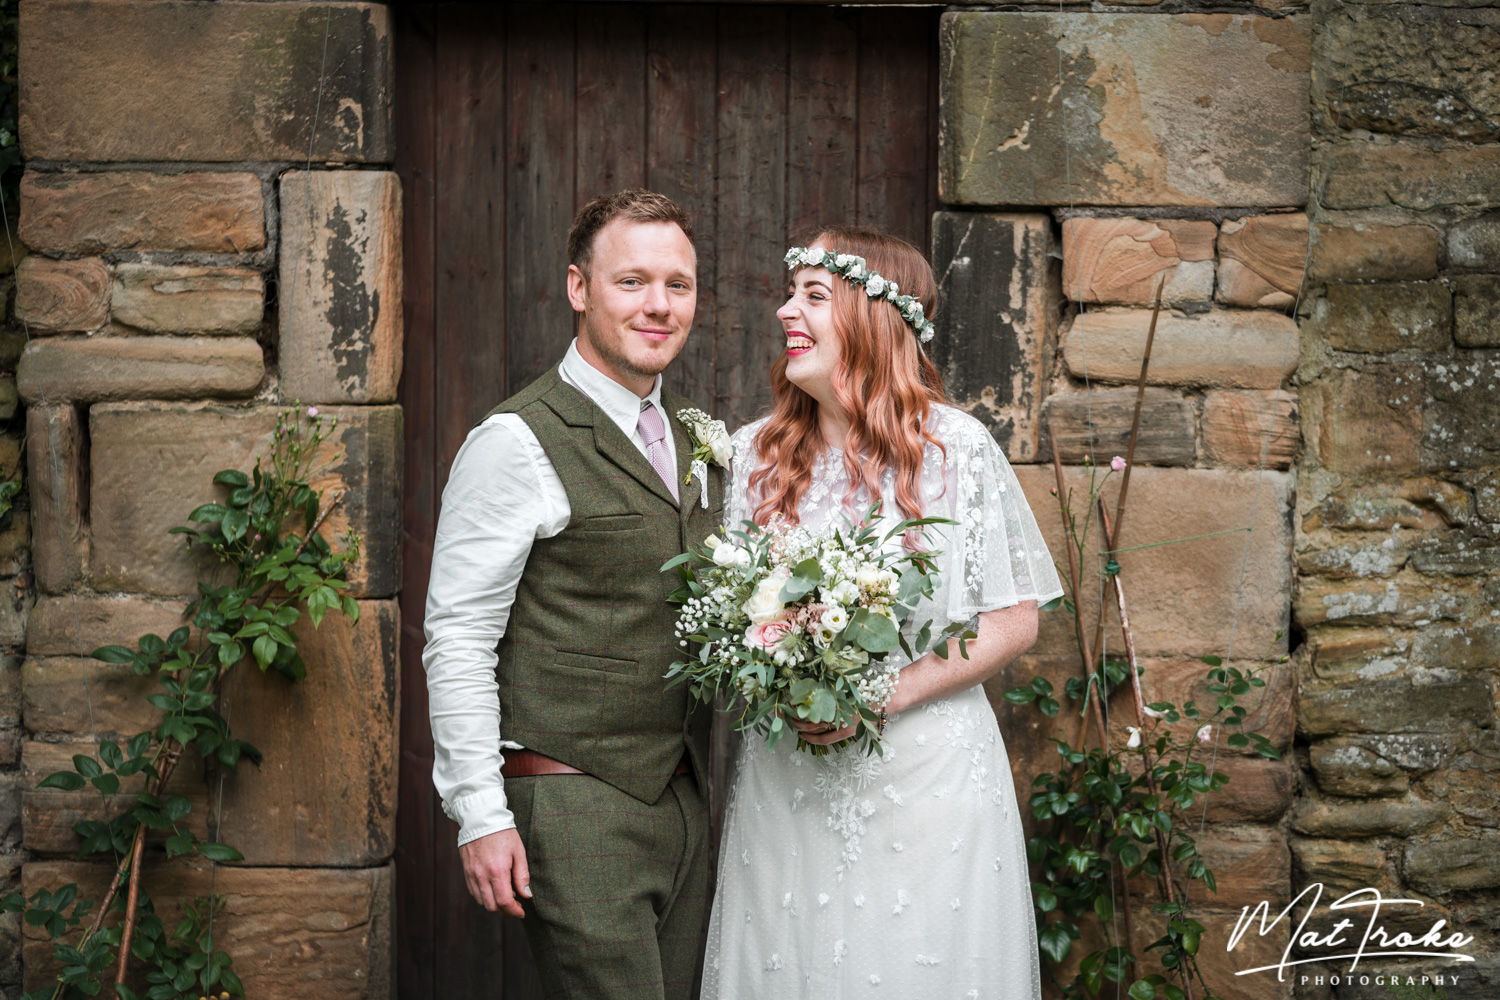 Dronfield Hall Barn Wedding Photographer - Mat Troke Photography